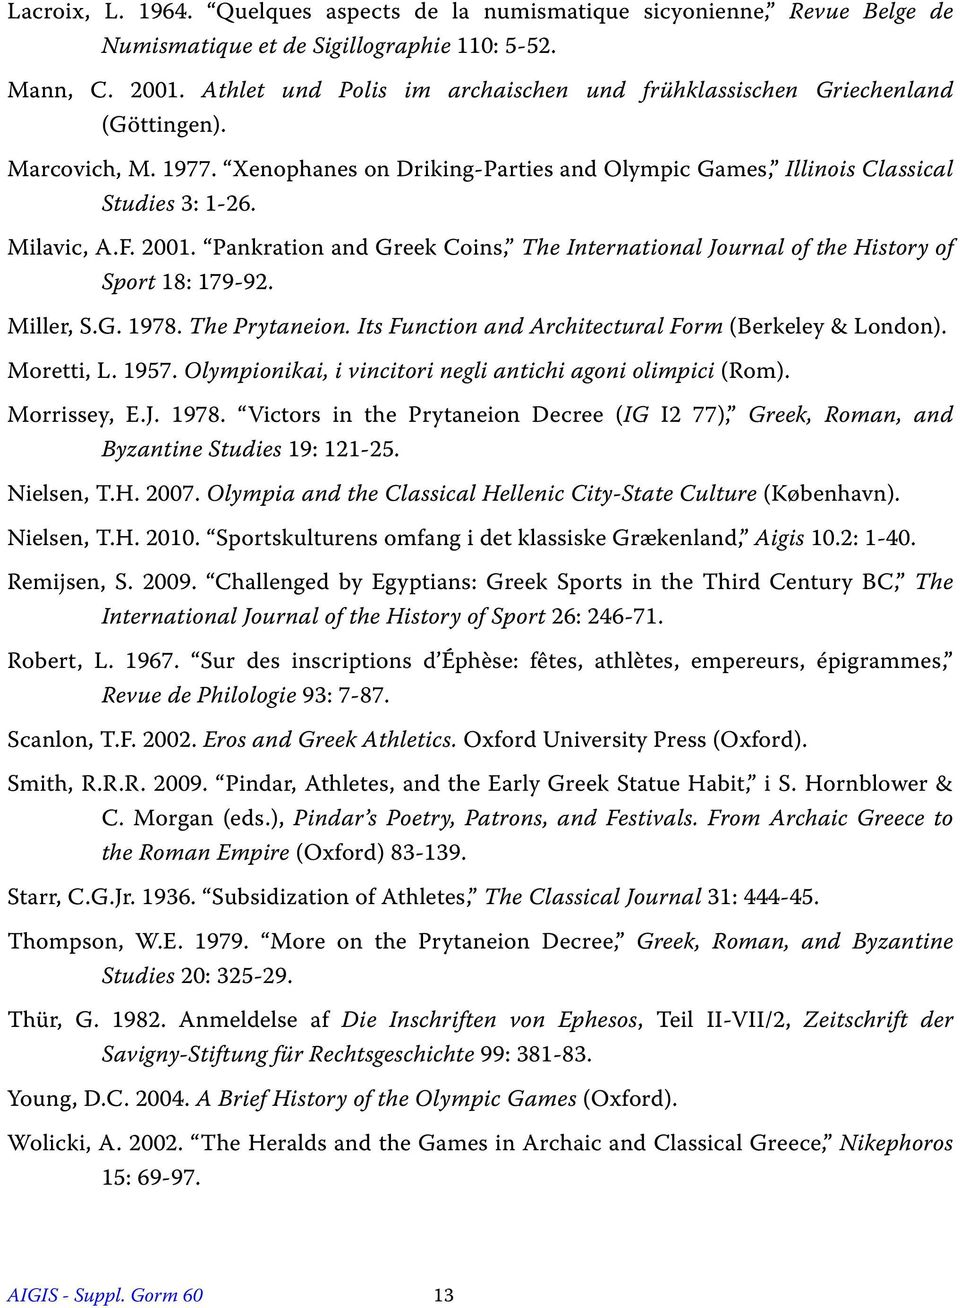 2001. Pankration and Greek Coins, The International Journal of the History of Sport 18: 179-92. Miller, S.G. 1978. The Prytaneion. Its Function and Architectural Form (Berkeley & London). Moretti, L.